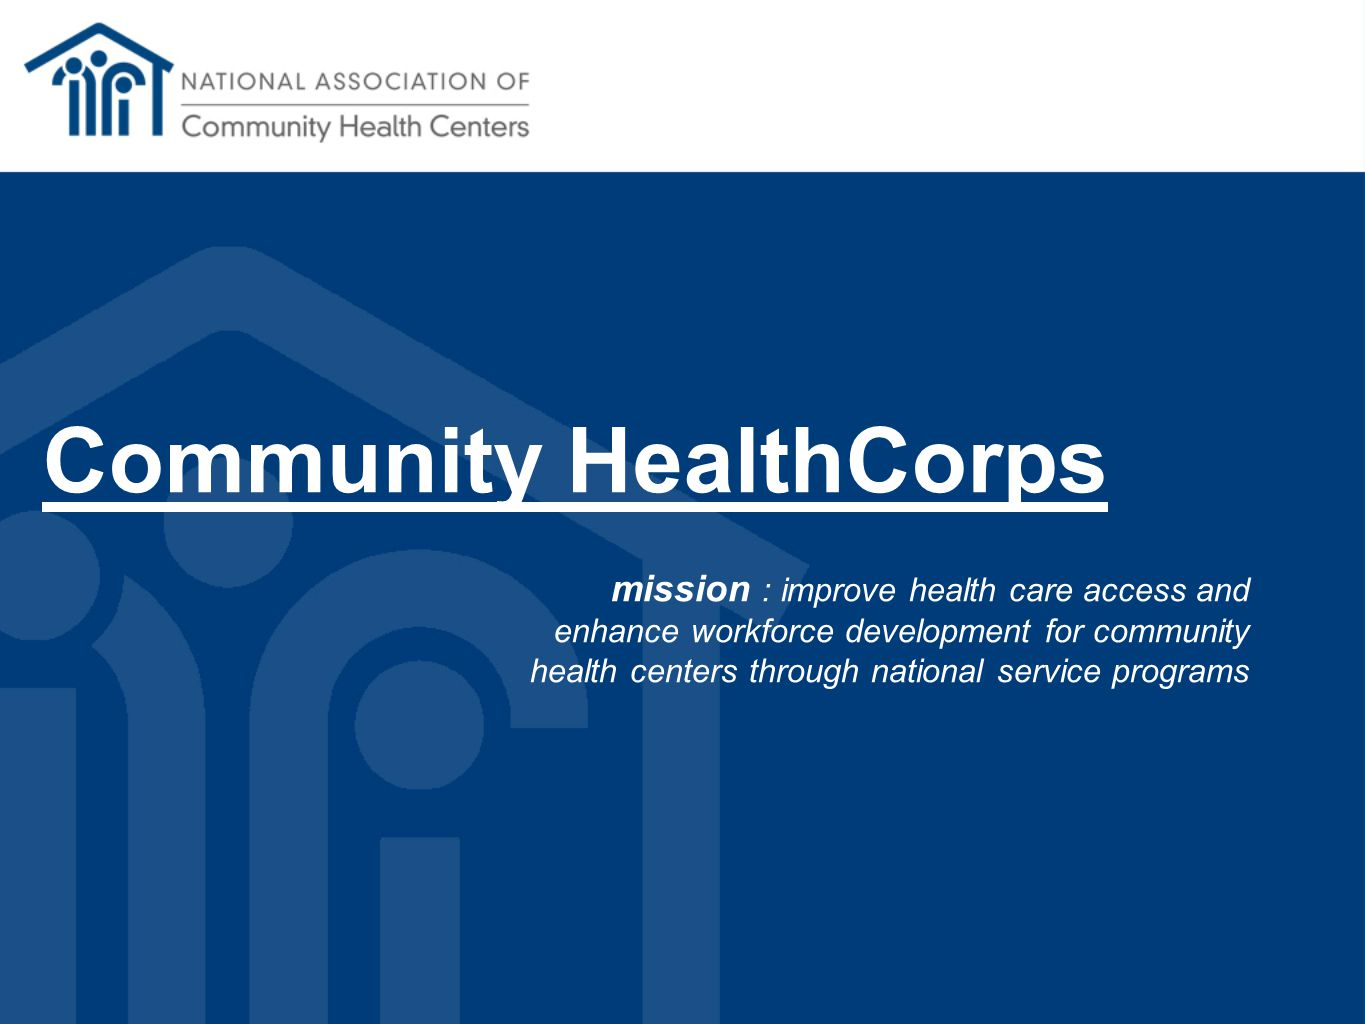 Community HealthCorps mission : improve health care access and enhance workforce development for community health centers through national service programs